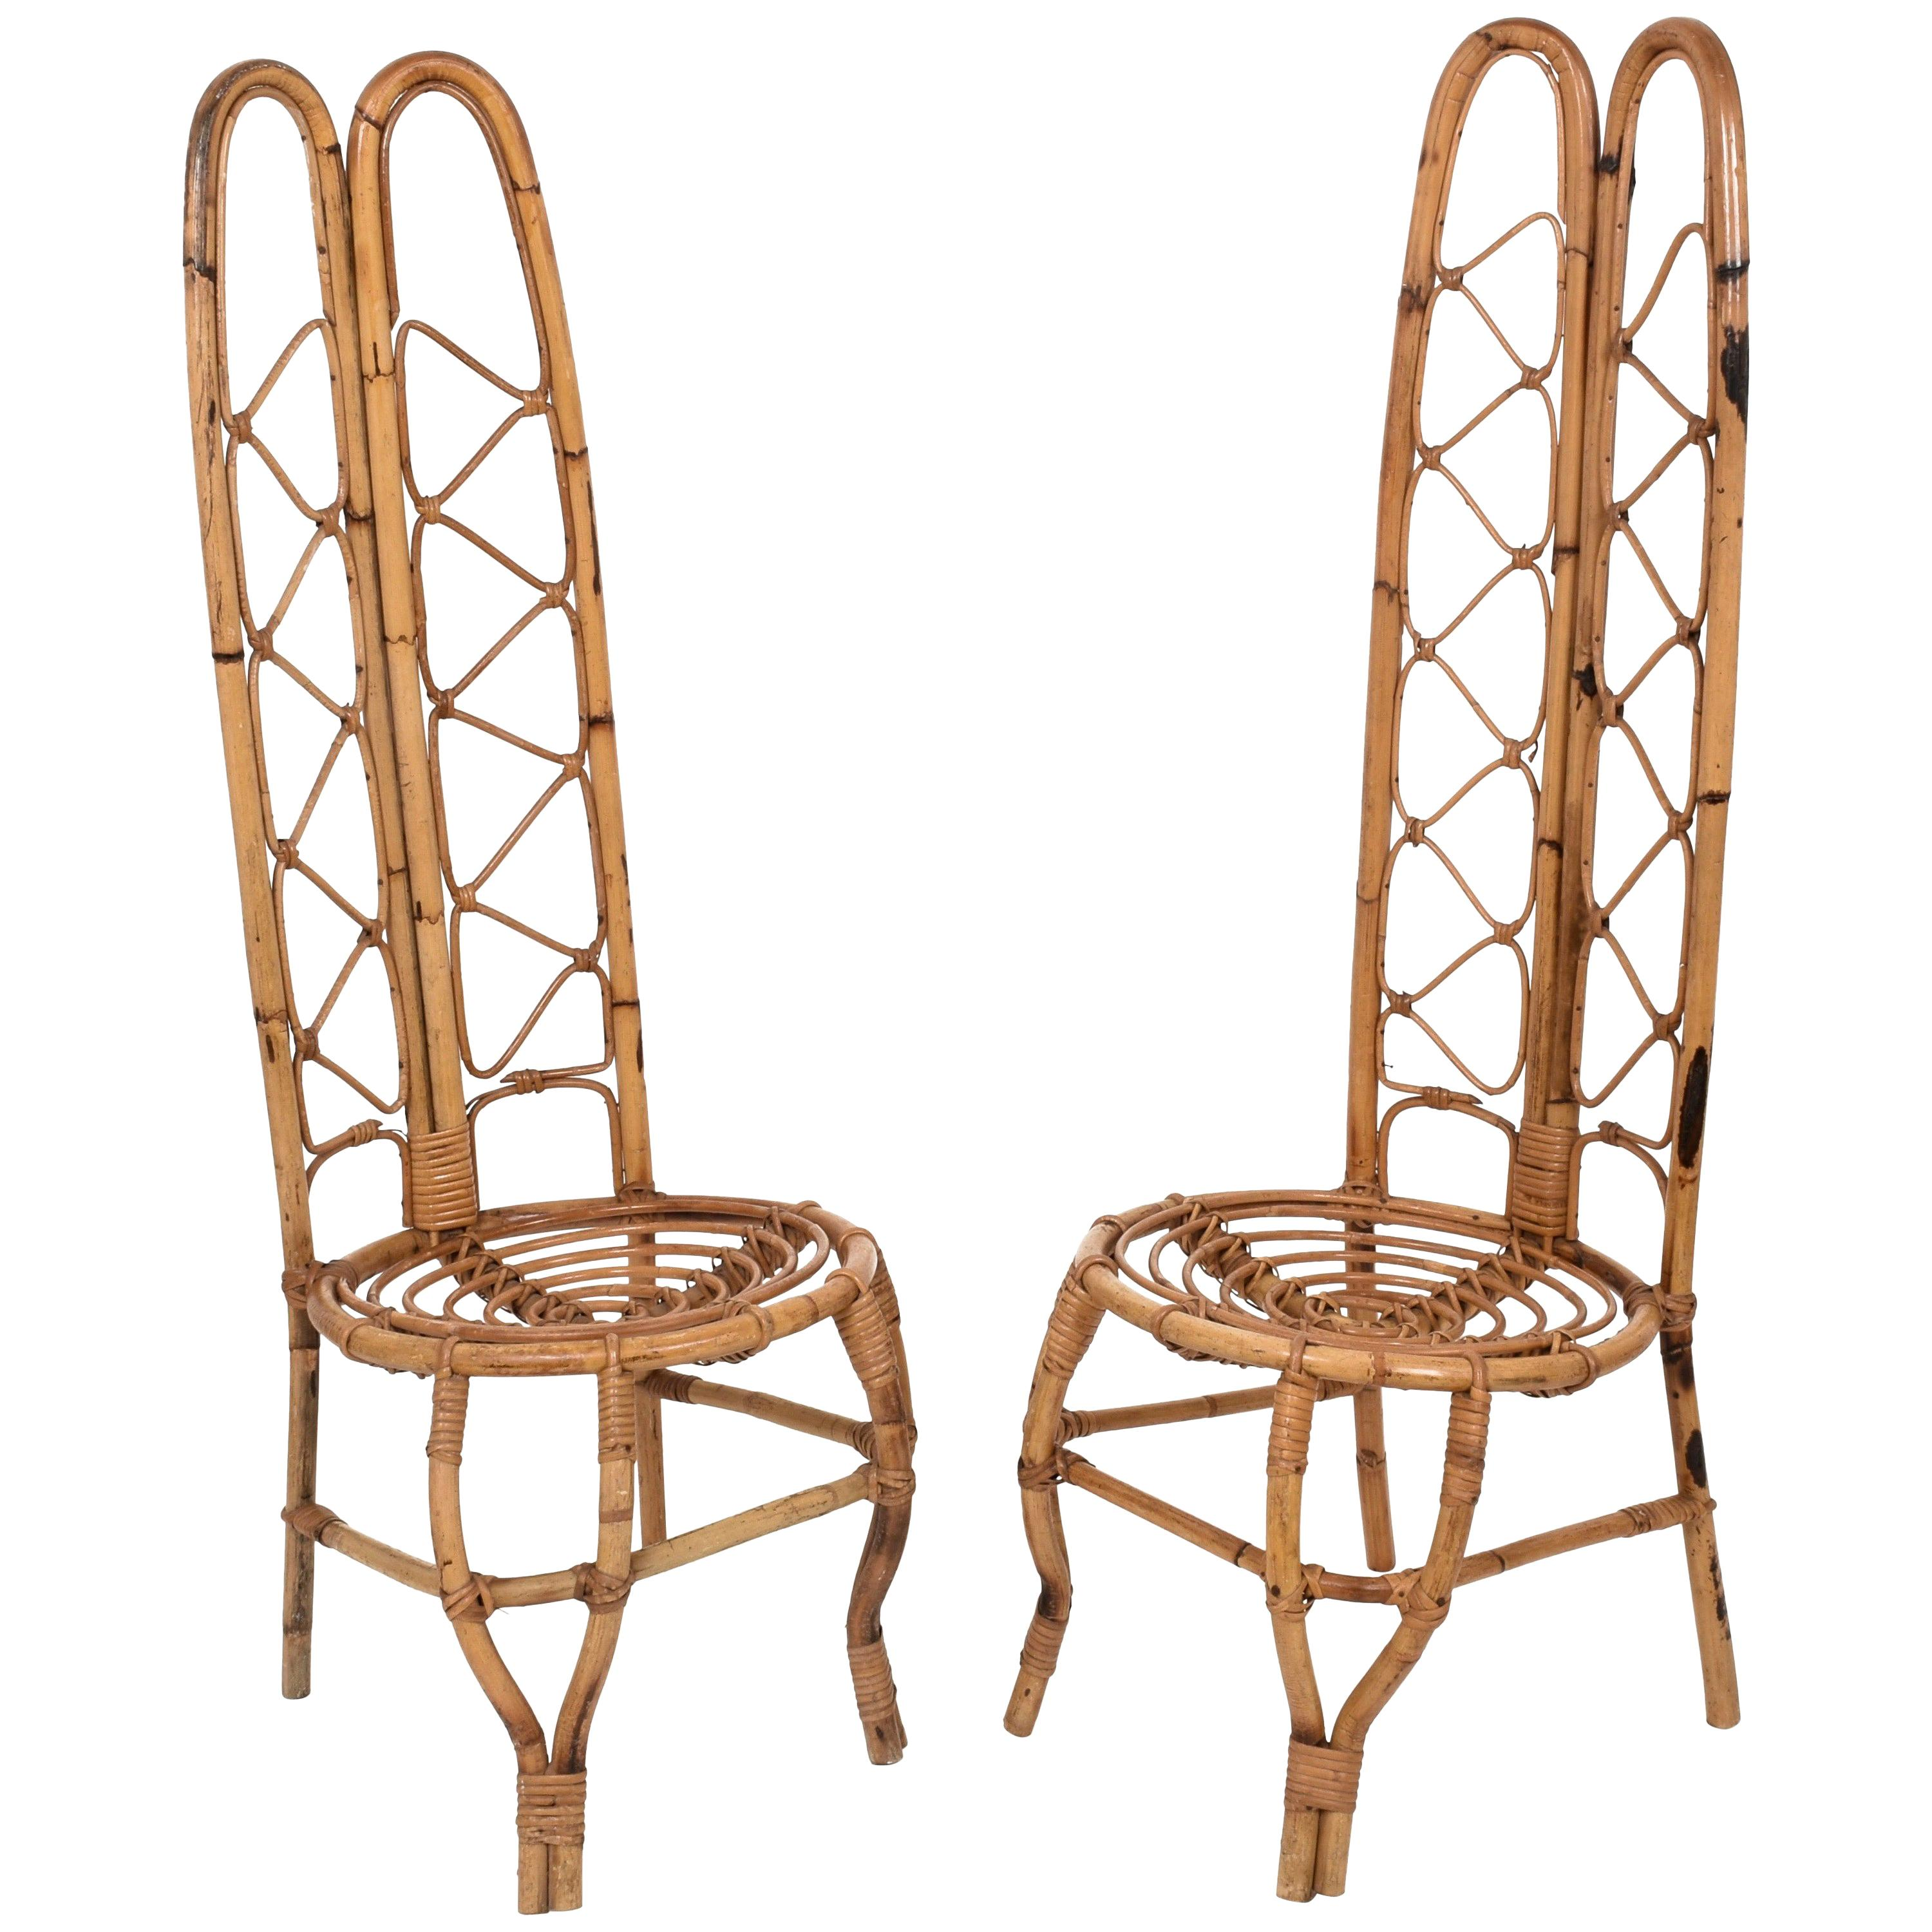 Pair of Midcentury French Riviera Rattan and Bamboo Chairs, France, 1960s